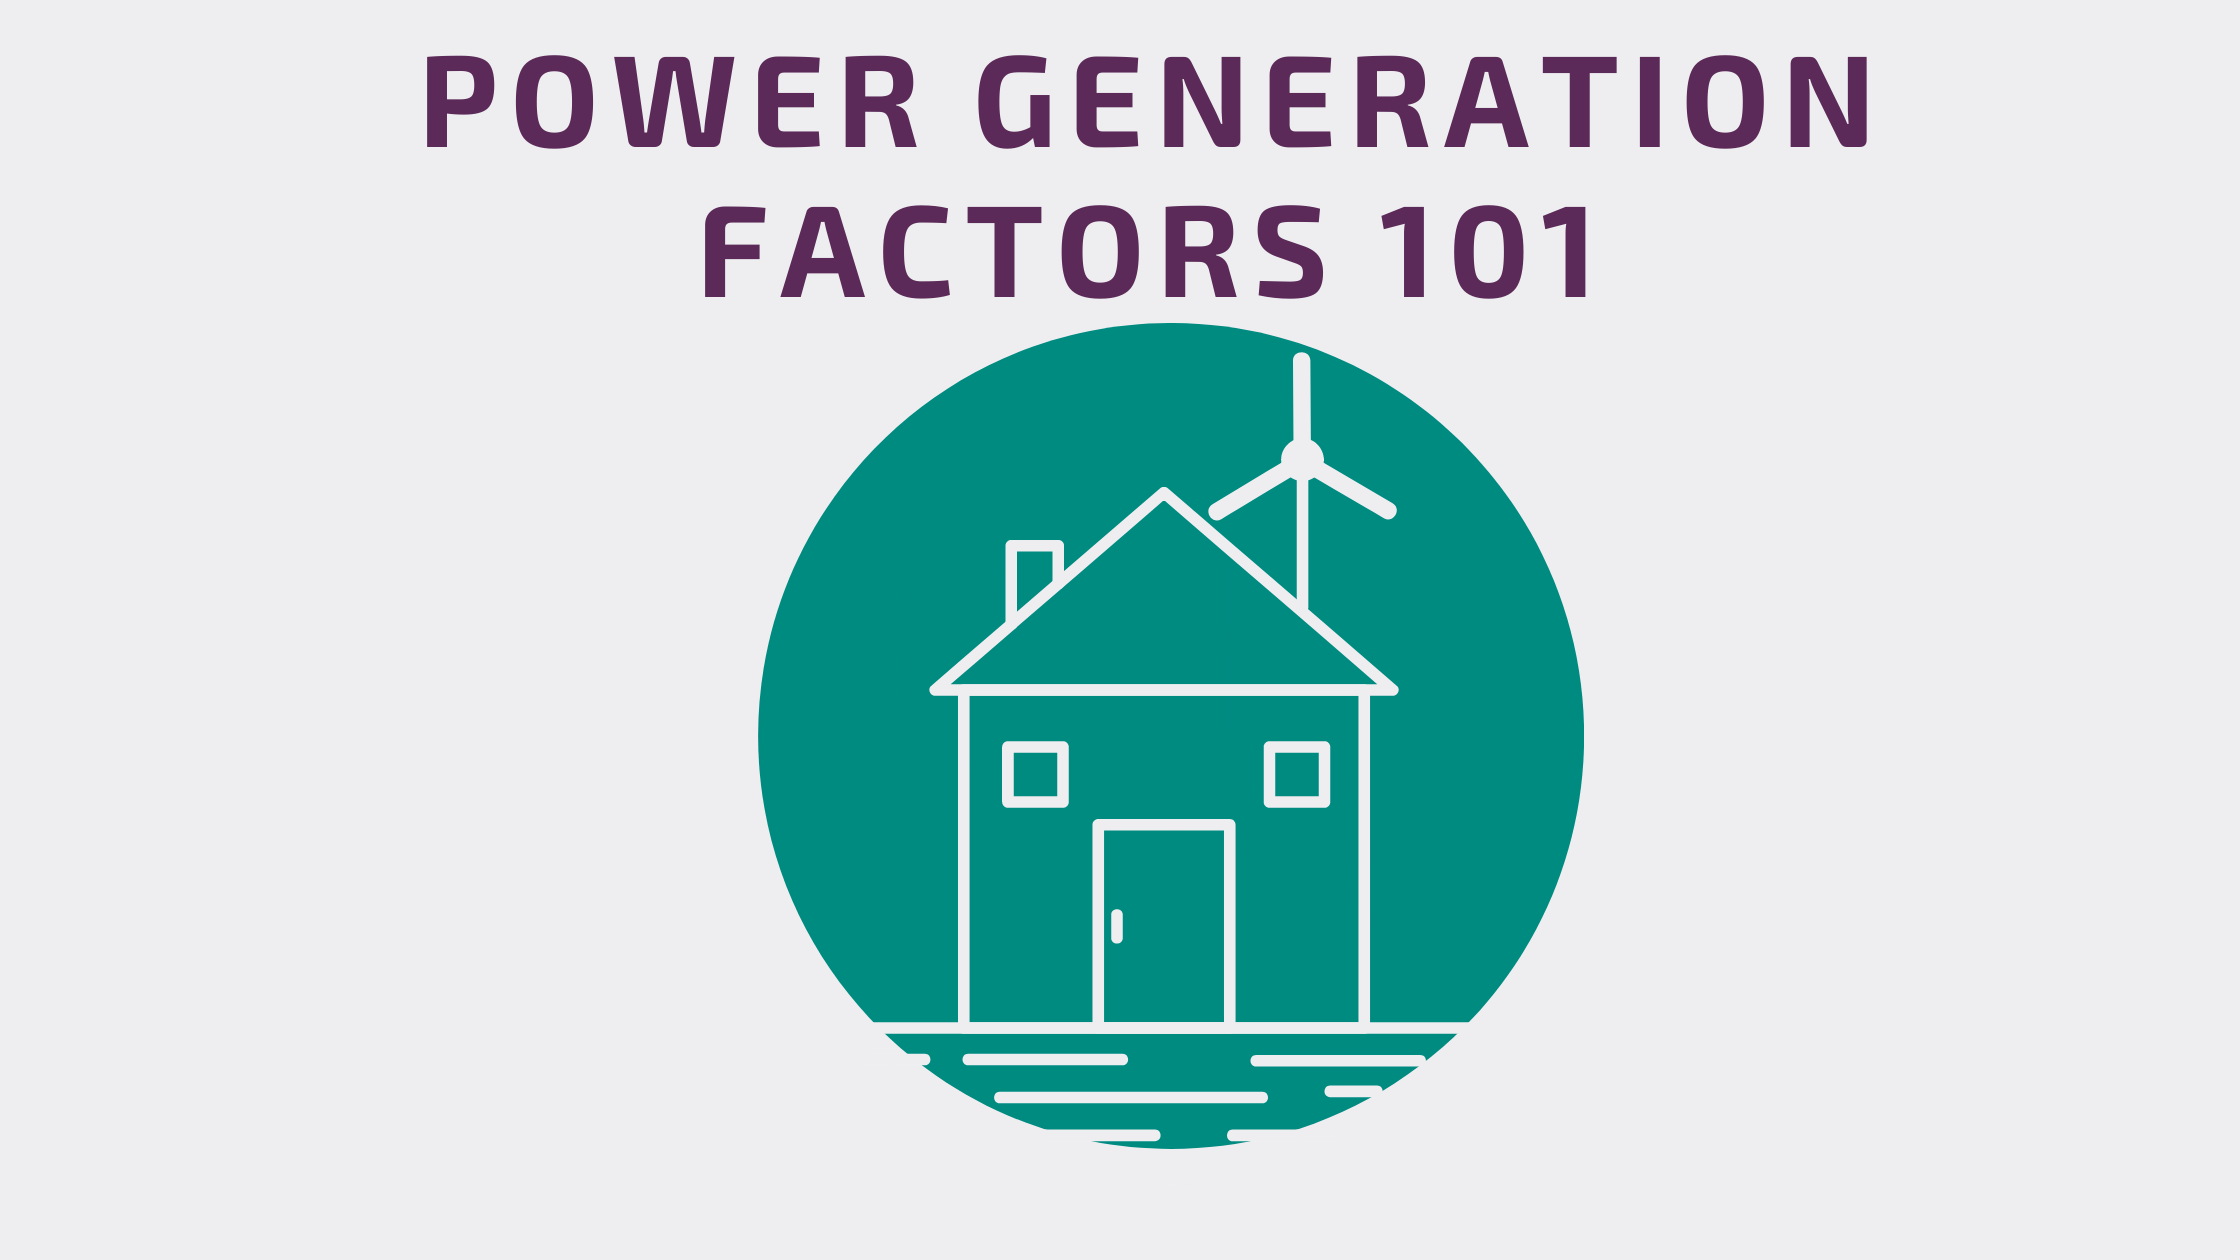 Power Generation Factors 101